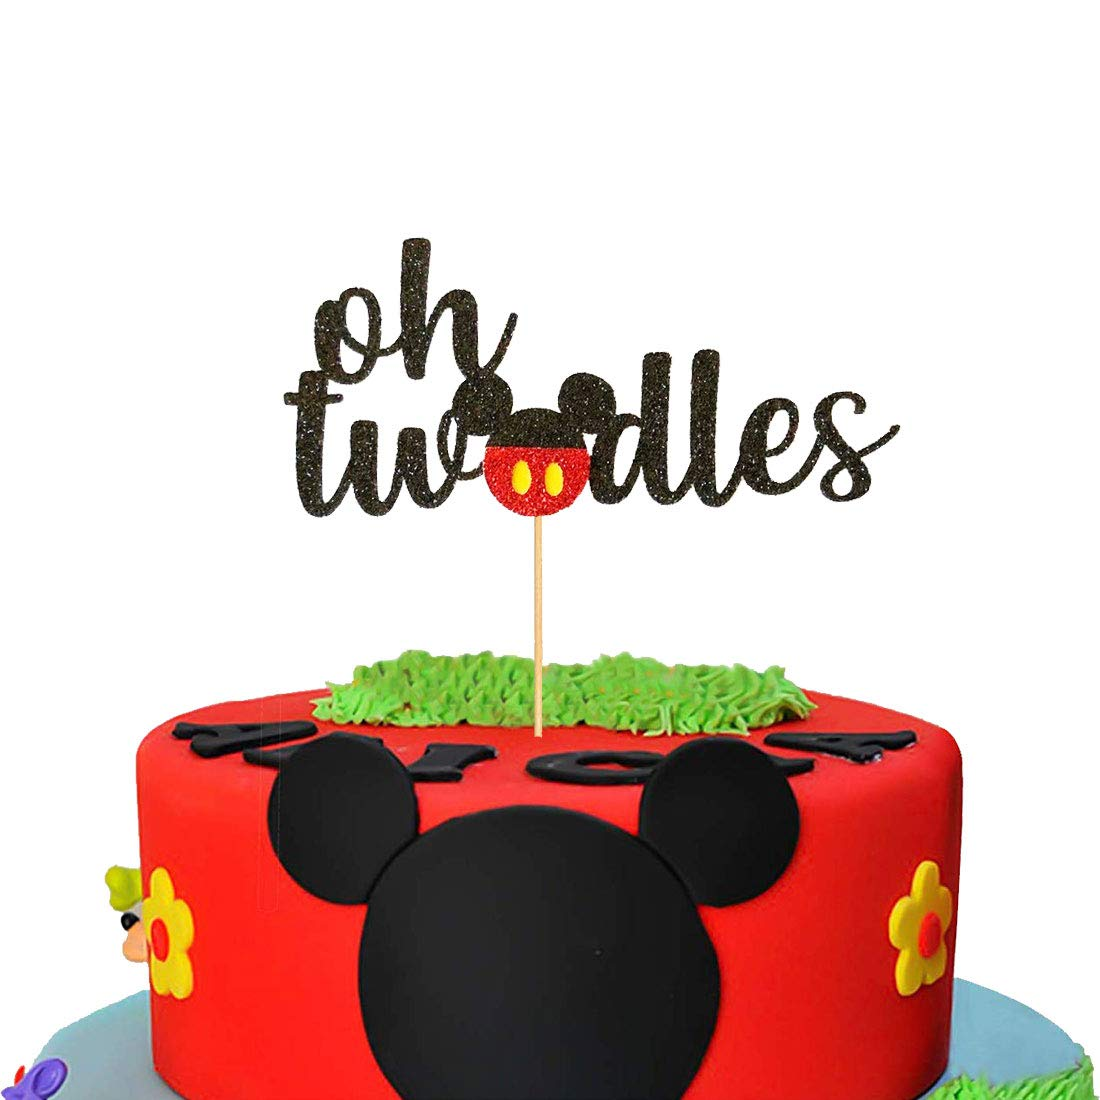 Outstanding Mickey Mouse Second Birthday Cake Topper Oh Two Dles Birthday Personalised Birthday Cards Paralily Jamesorg